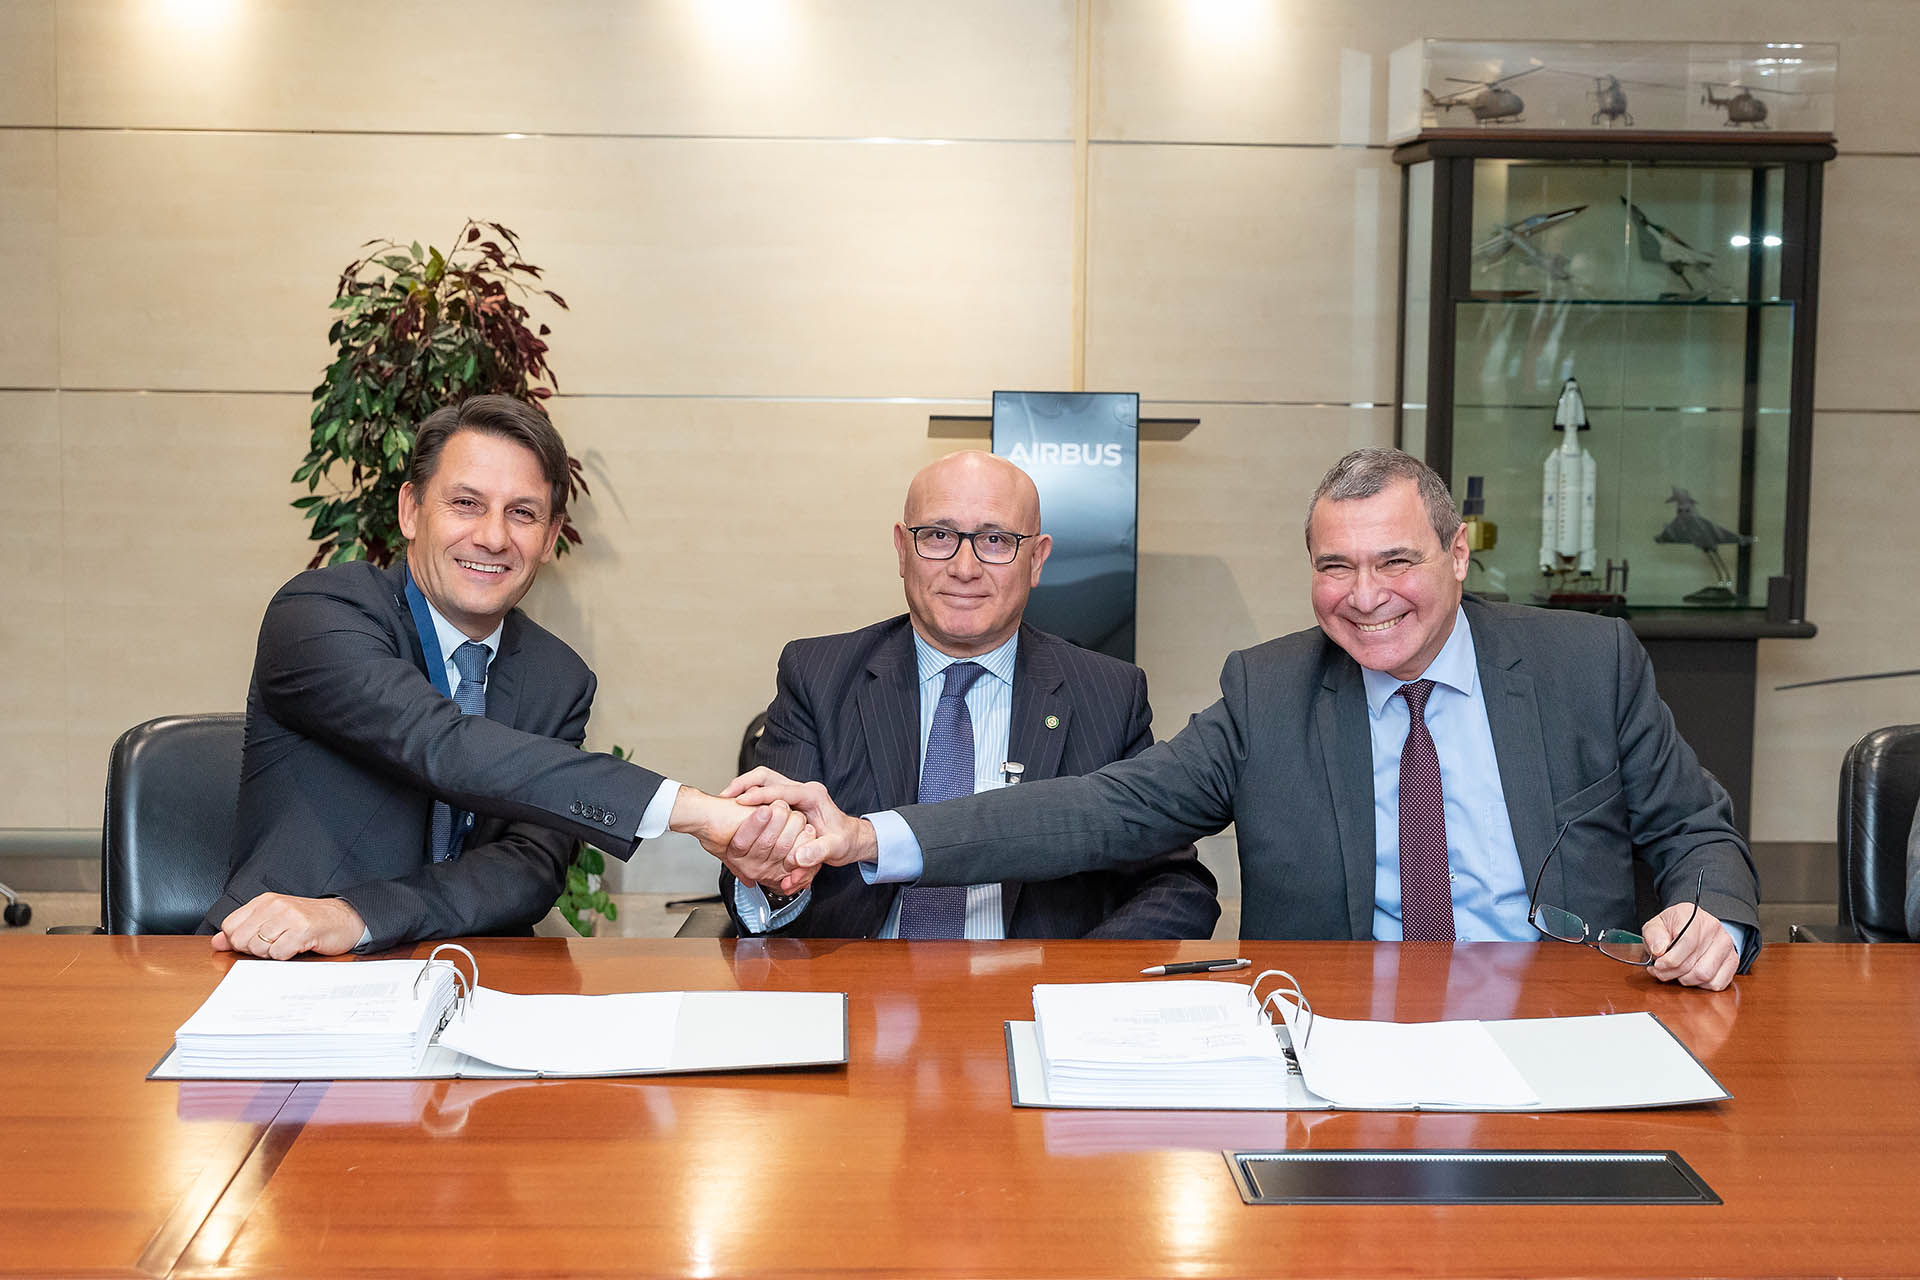 A moment during the signature of the Contract Amendment 8. From left to right: Didier Plantecoste, Matteo Bisceglia, OCCAR Director& Hervé Daumas, Airbus DS. ©OCCAR